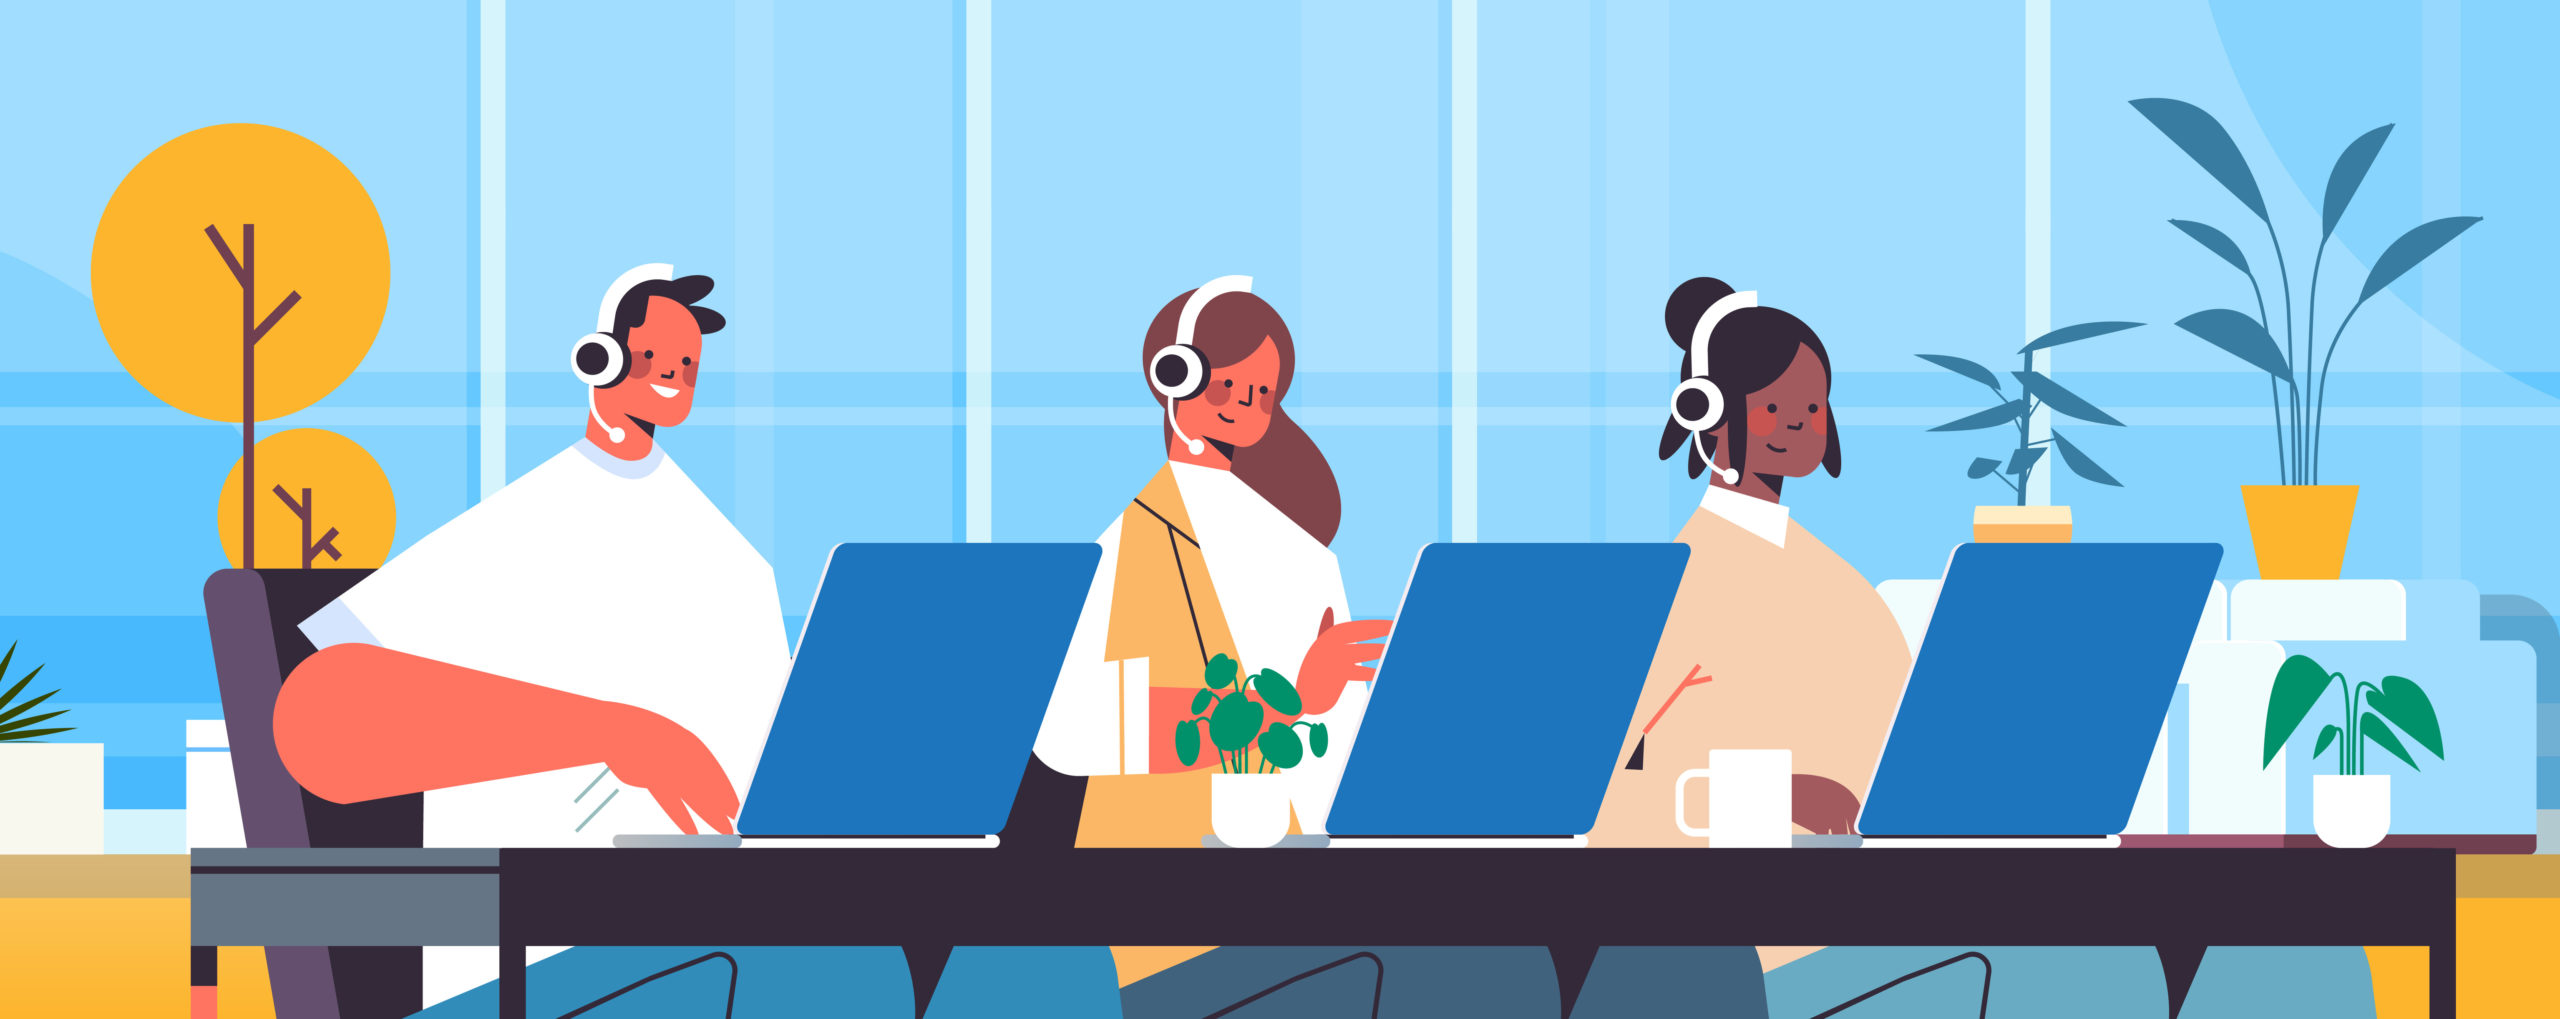 Customer Success Operators with headset are chatting with customers in an office